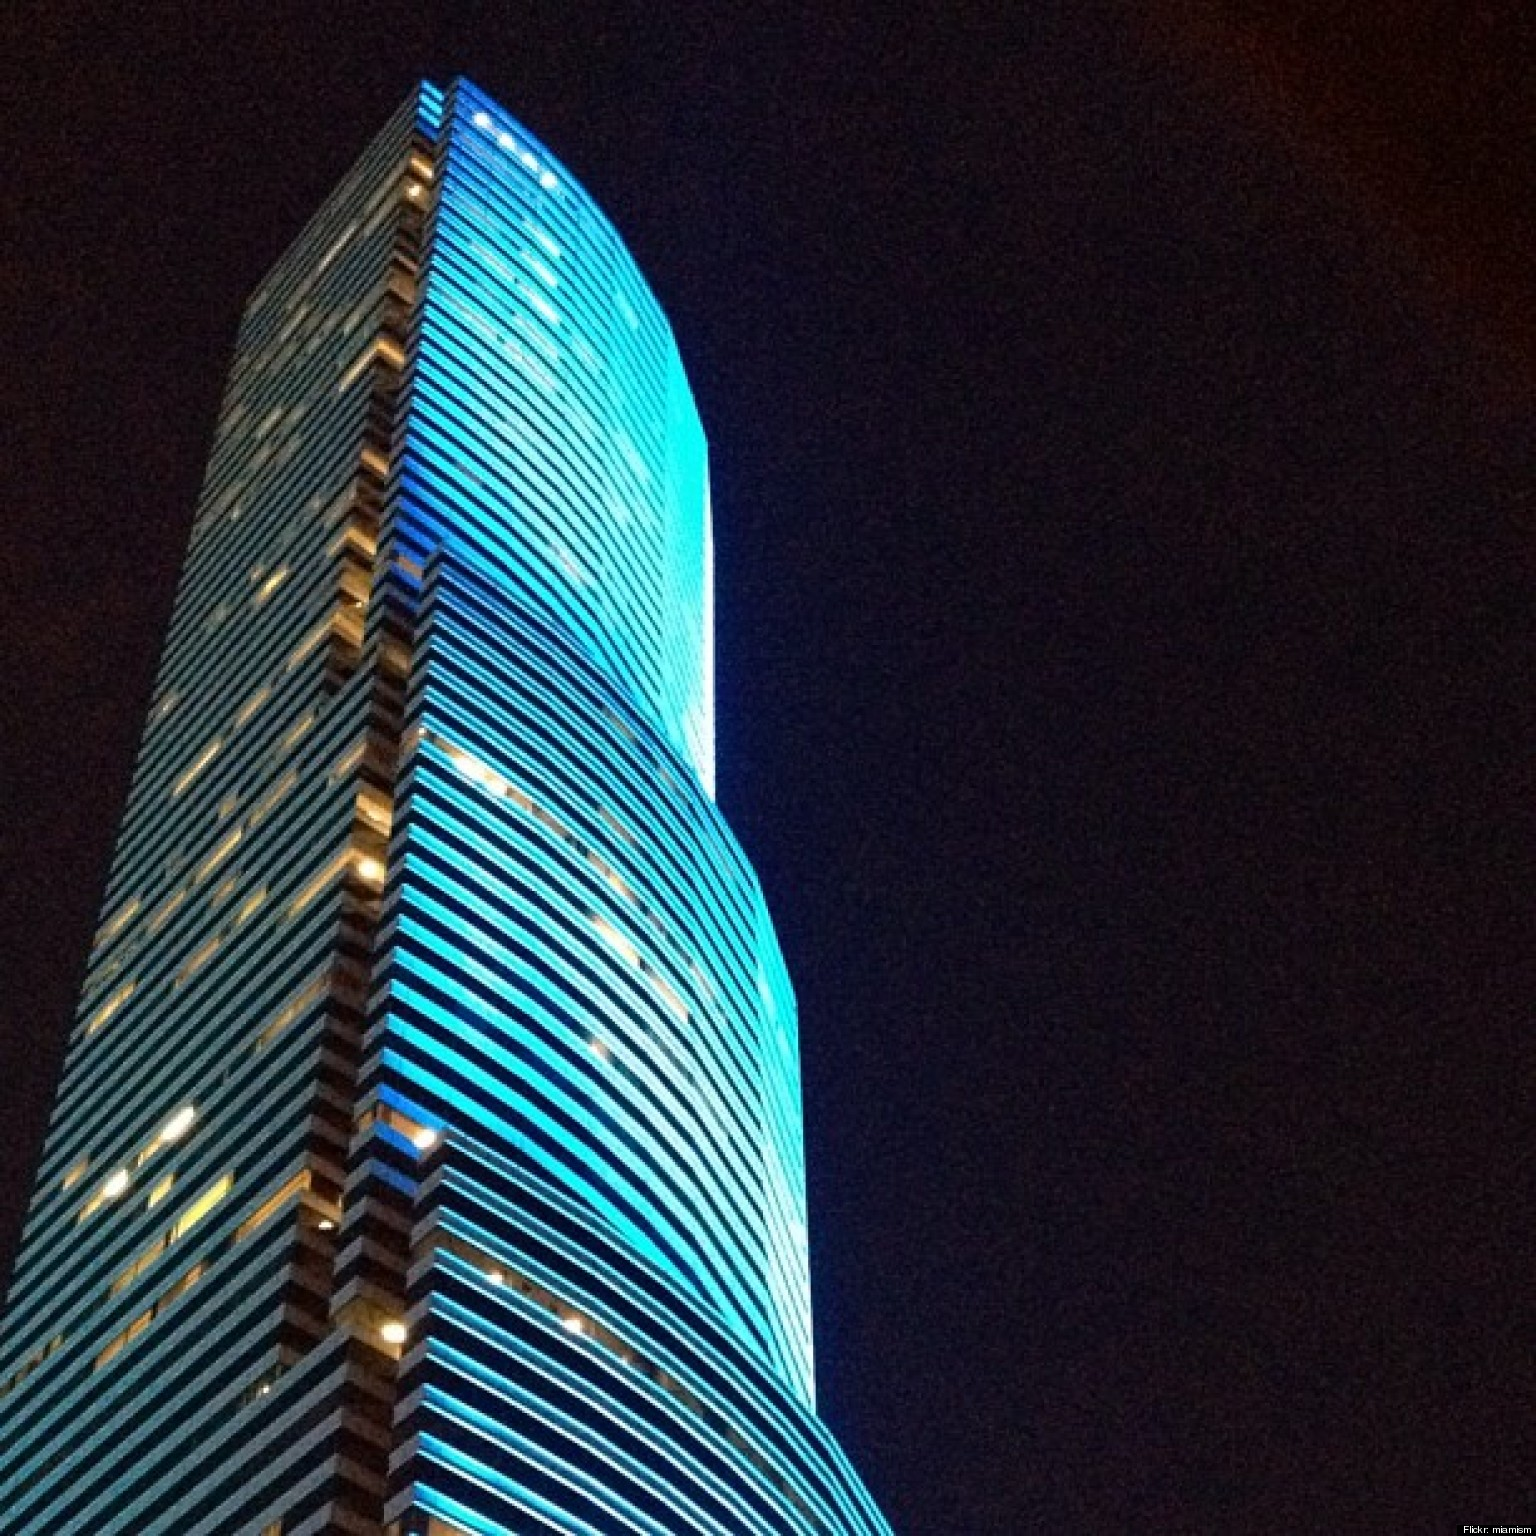 Colored Led Lights >> Miami Tower Changes Colors Instantly With New LED Lights ...